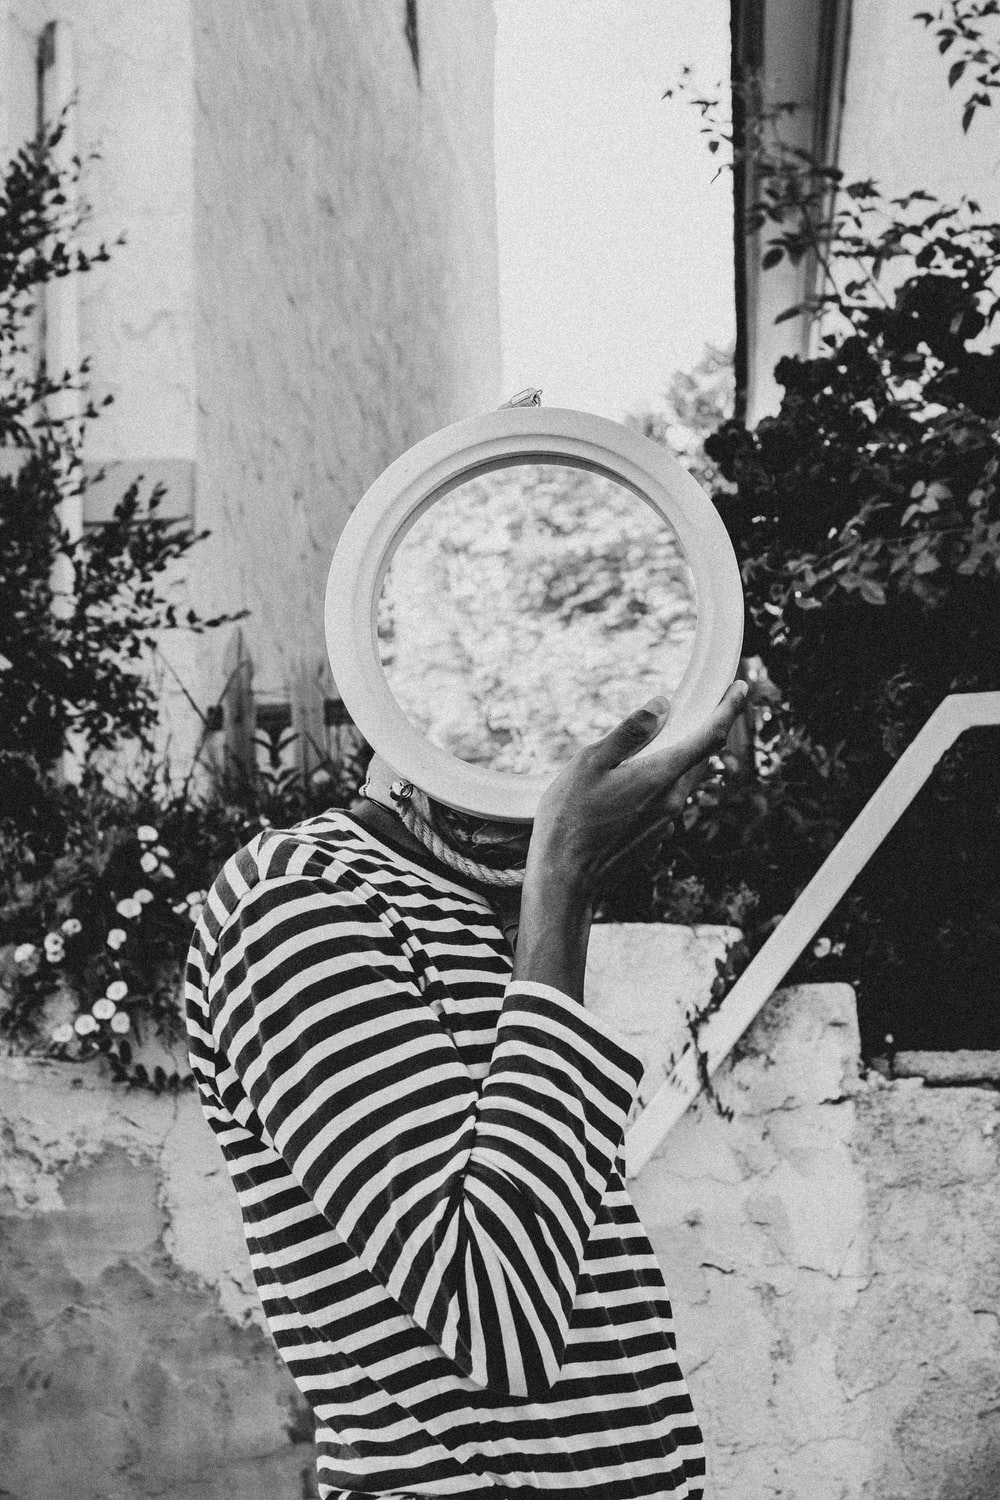 greyscale photography of person holding round decor